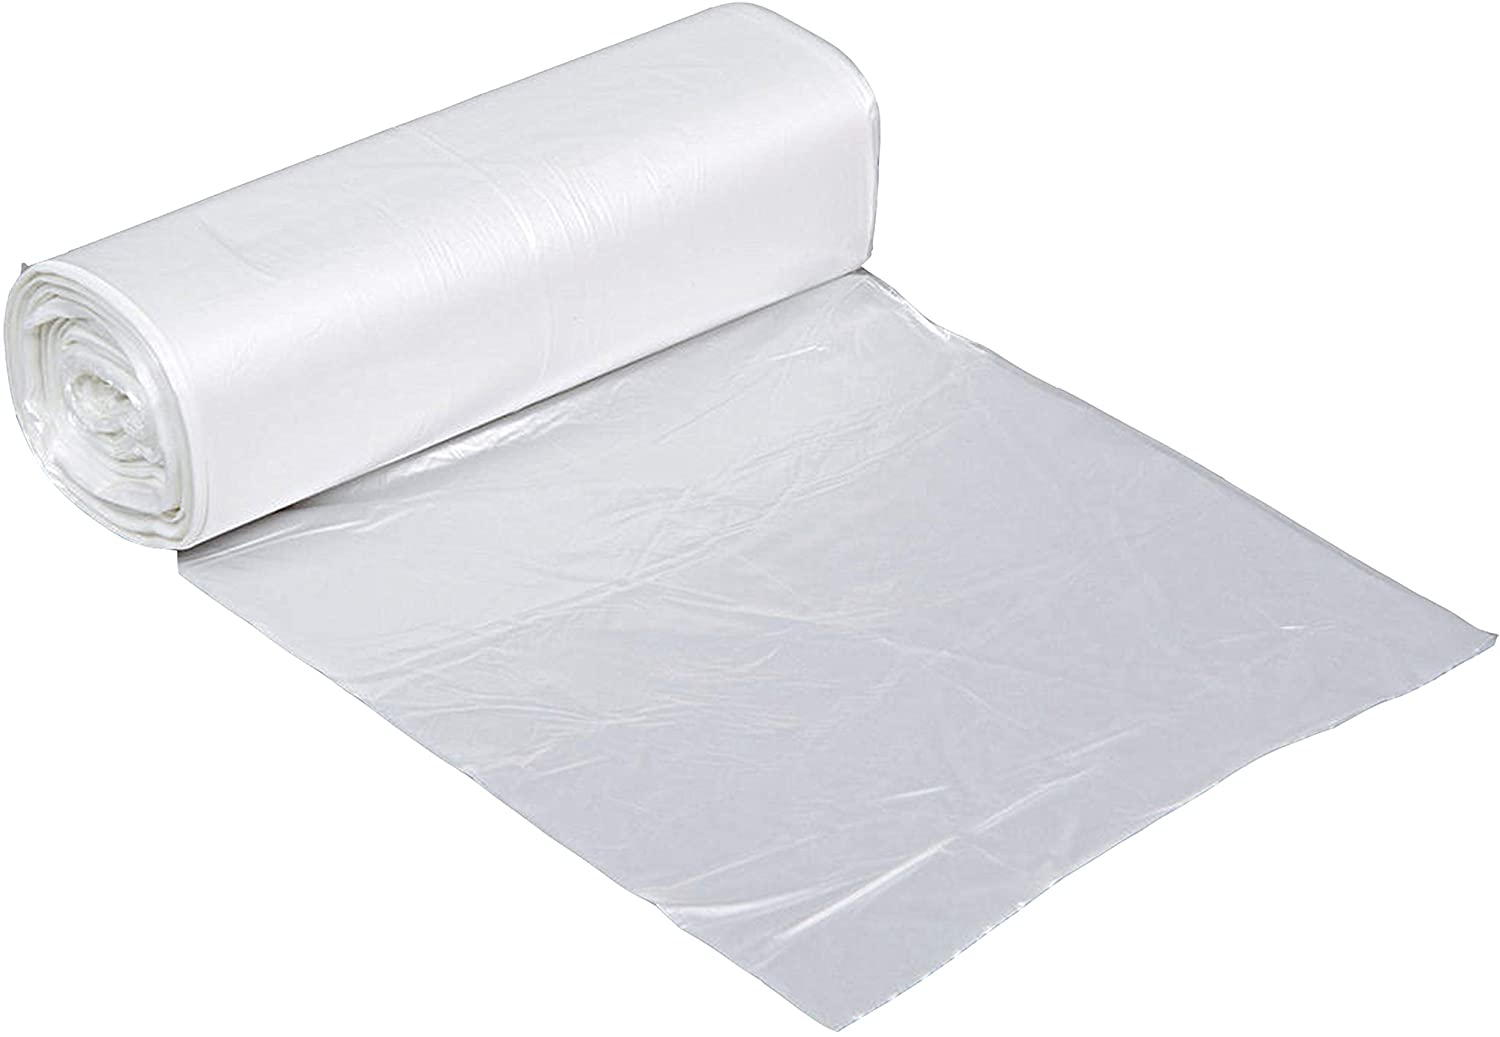 Clear Kitchen Trash Bags 7-10 Gallon Clear Plastic Garbage Bag for Kitchen, Home, Office, Bathroom 48 Pack